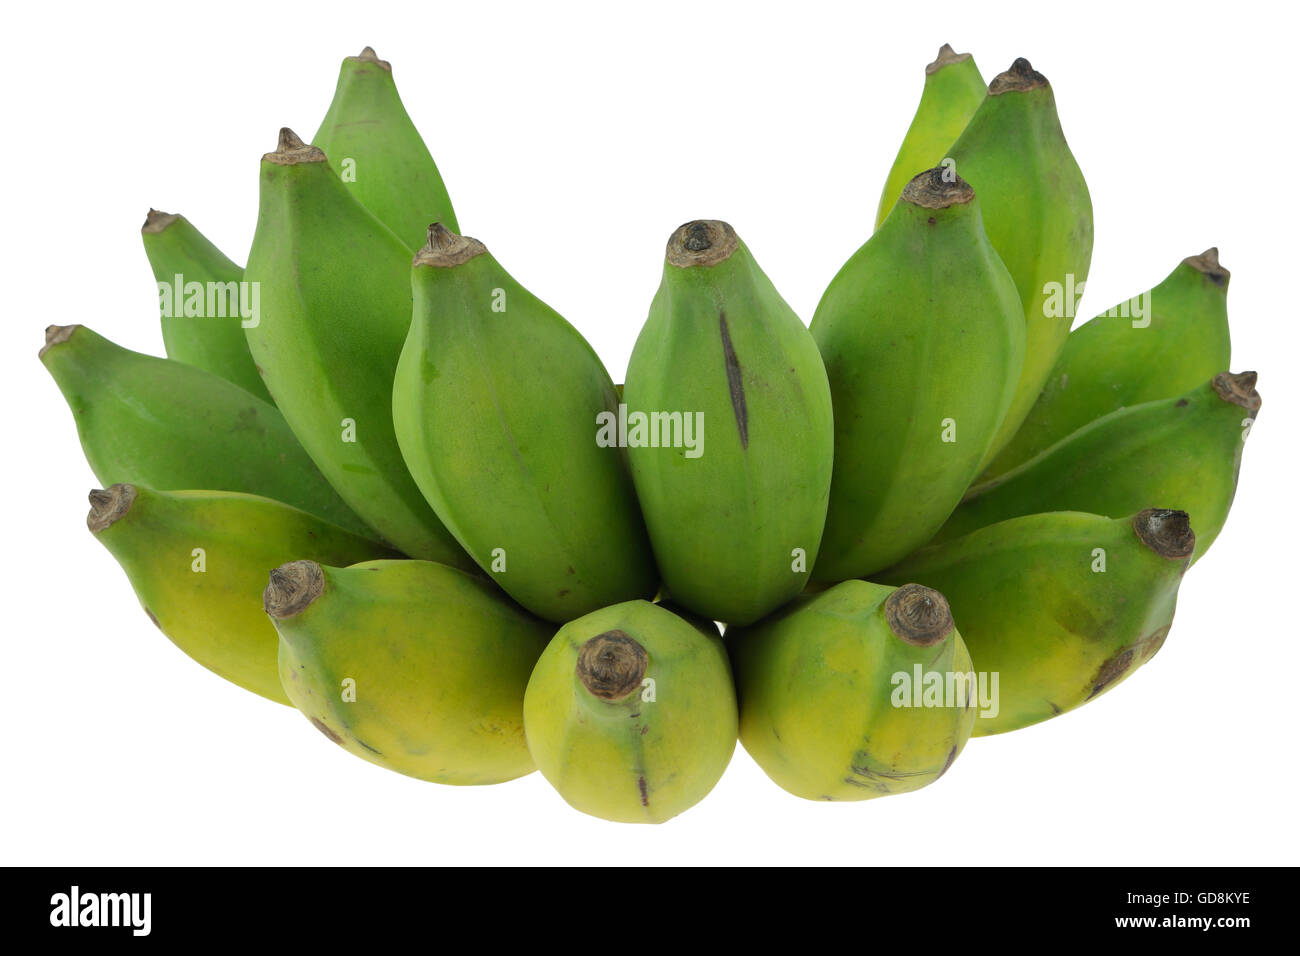 Cultivated banana on isolate white background. Stock Photo